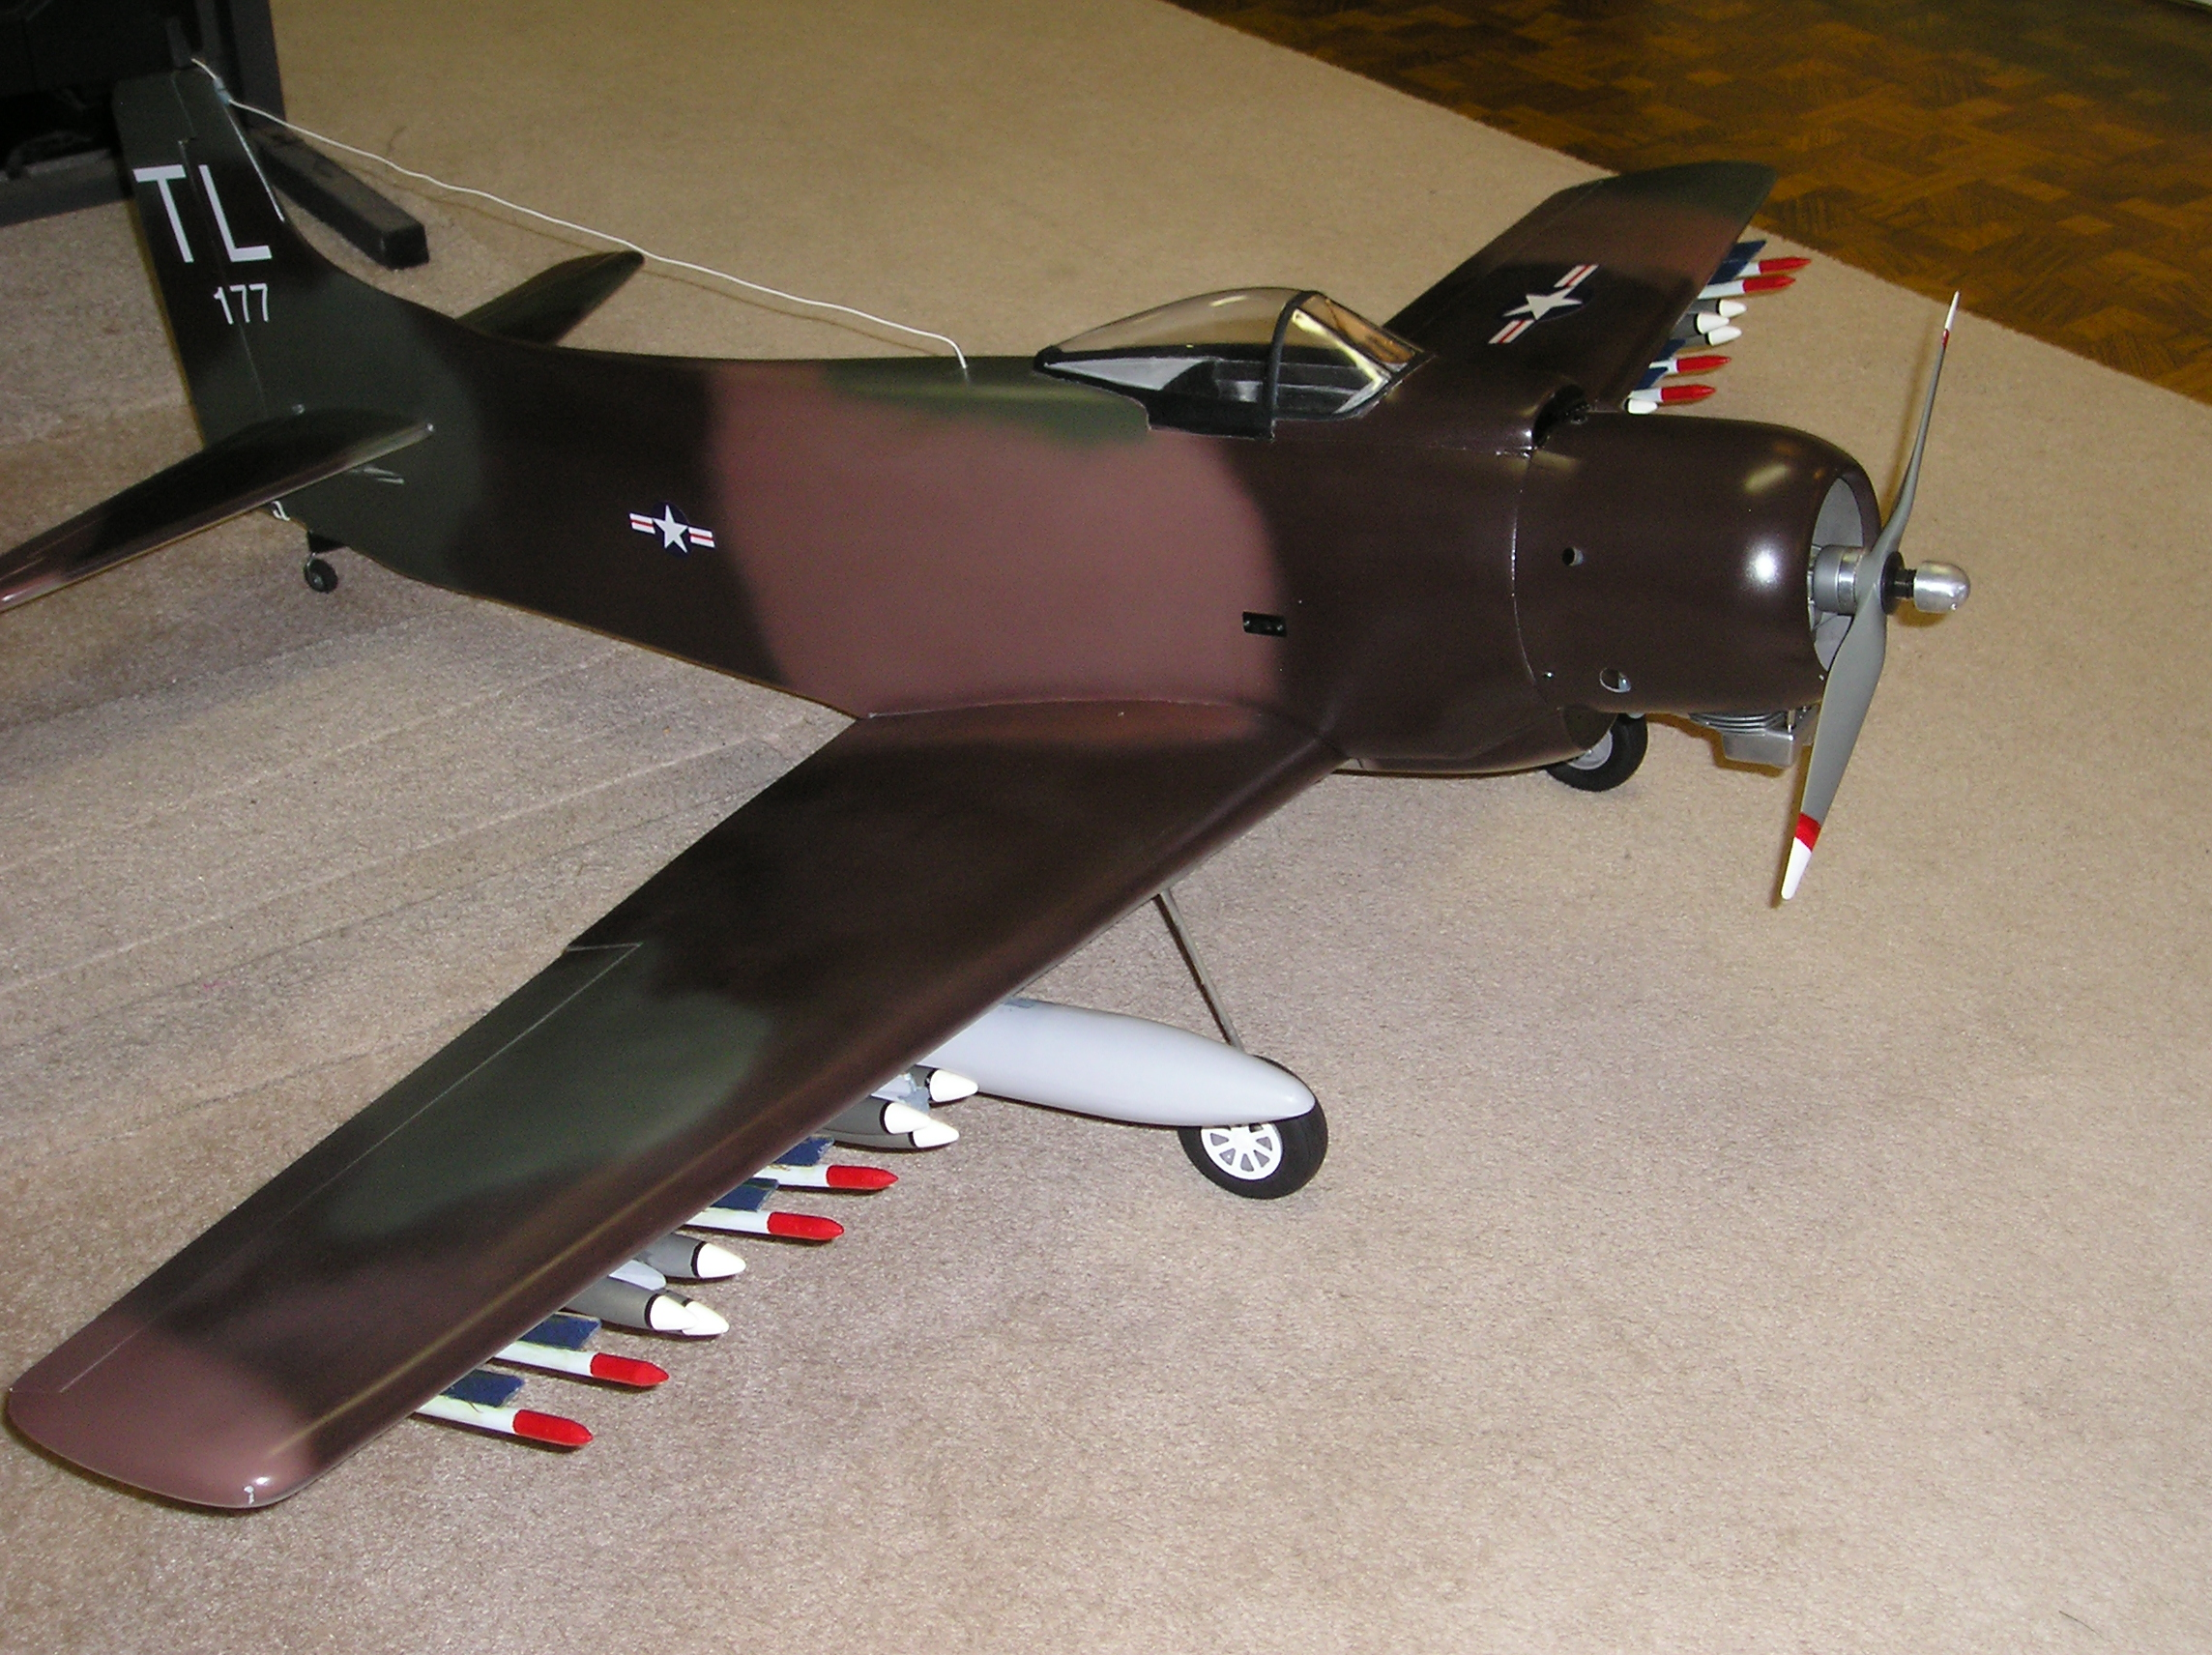 Click image for larger version  Name:2011 Skyraider 002.JPG Views:344 Size:2.11 MB ID:2109600